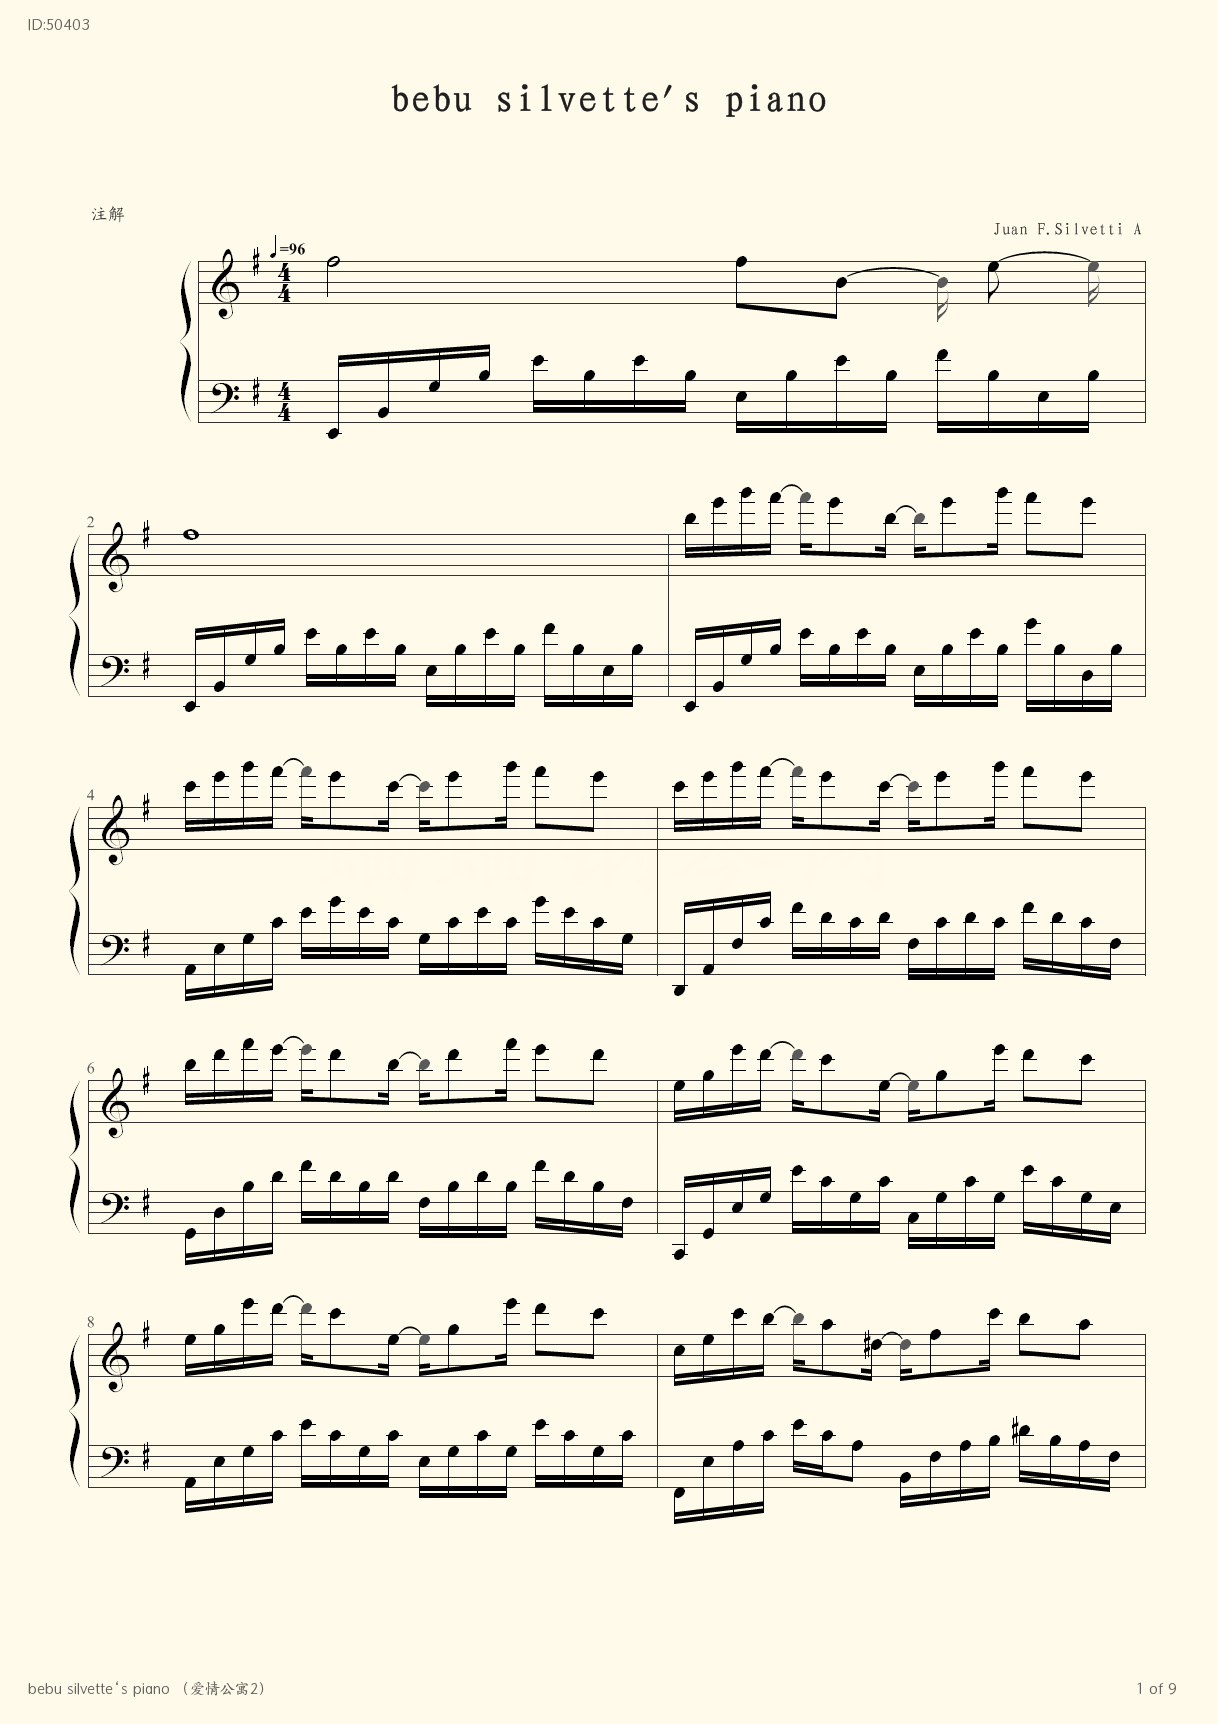 bebu silvette s piano 2 - Movies - first page